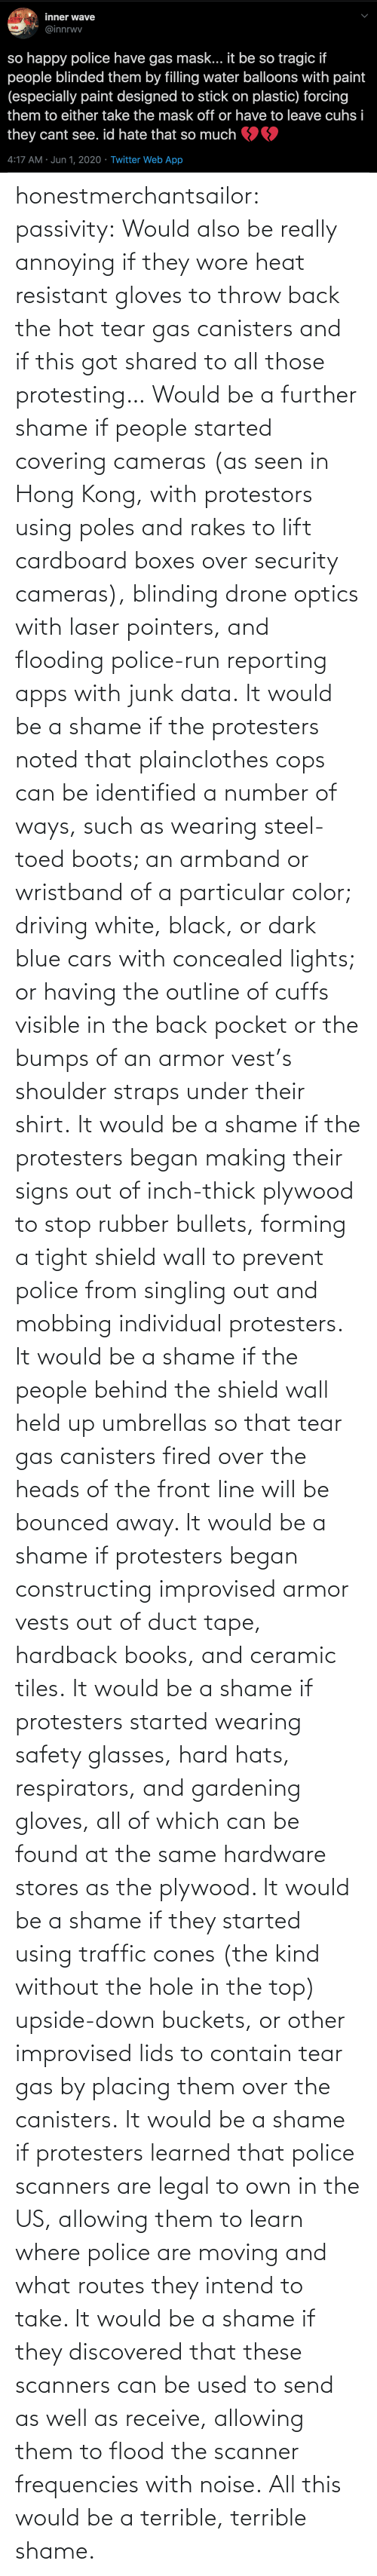 Gardening: honestmerchantsailor:  passivity: Would also be really annoying if they wore heat resistant gloves to throw back the hot tear gas canisters and if this got shared to all those protesting… Would be a further shame if people started covering cameras (as seen in Hong Kong, with protestors using poles and rakes to lift cardboard boxes over security cameras), blinding drone optics with laser pointers, and flooding police-run reporting apps with junk data. It would be a shame if the protesters noted that plainclothes cops can be identified a number of ways, such as wearing steel-toed boots; an armband or wristband of a particular color; driving white, black, or dark blue cars with concealed lights; or having the outline of cuffs visible in the back pocket or the bumps of an armor vest's shoulder straps under their shirt. It would be a shame if the protesters began making their signs out of inch-thick plywood to stop rubber bullets, forming a tight shield wall to prevent police from singling out and mobbing individual protesters. It would be a shame if the people behind the shield wall held up umbrellas so that tear gas canisters fired over the heads of the front line will be bounced away. It would be a shame if protesters began constructing improvised armor vests out of duct tape, hardback books, and ceramic tiles. It would be a shame if protesters started wearing safety glasses, hard hats, respirators, and gardening gloves, all of which can be found at the same hardware stores as the plywood. It would be a shame if they started using traffic cones (the kind without the hole in the top) upside-down buckets, or other improvised lids to contain tear gas by placing them over the canisters. It would be a shame if protesters learned that police scanners are legal to own in the US, allowing them to learn where police are moving and what routes they intend to take. It would be a shame if they discovered that these scanners can be used to send as well as receive, allowing them to flood the scanner frequencies with noise. All this would be a terrible, terrible shame.